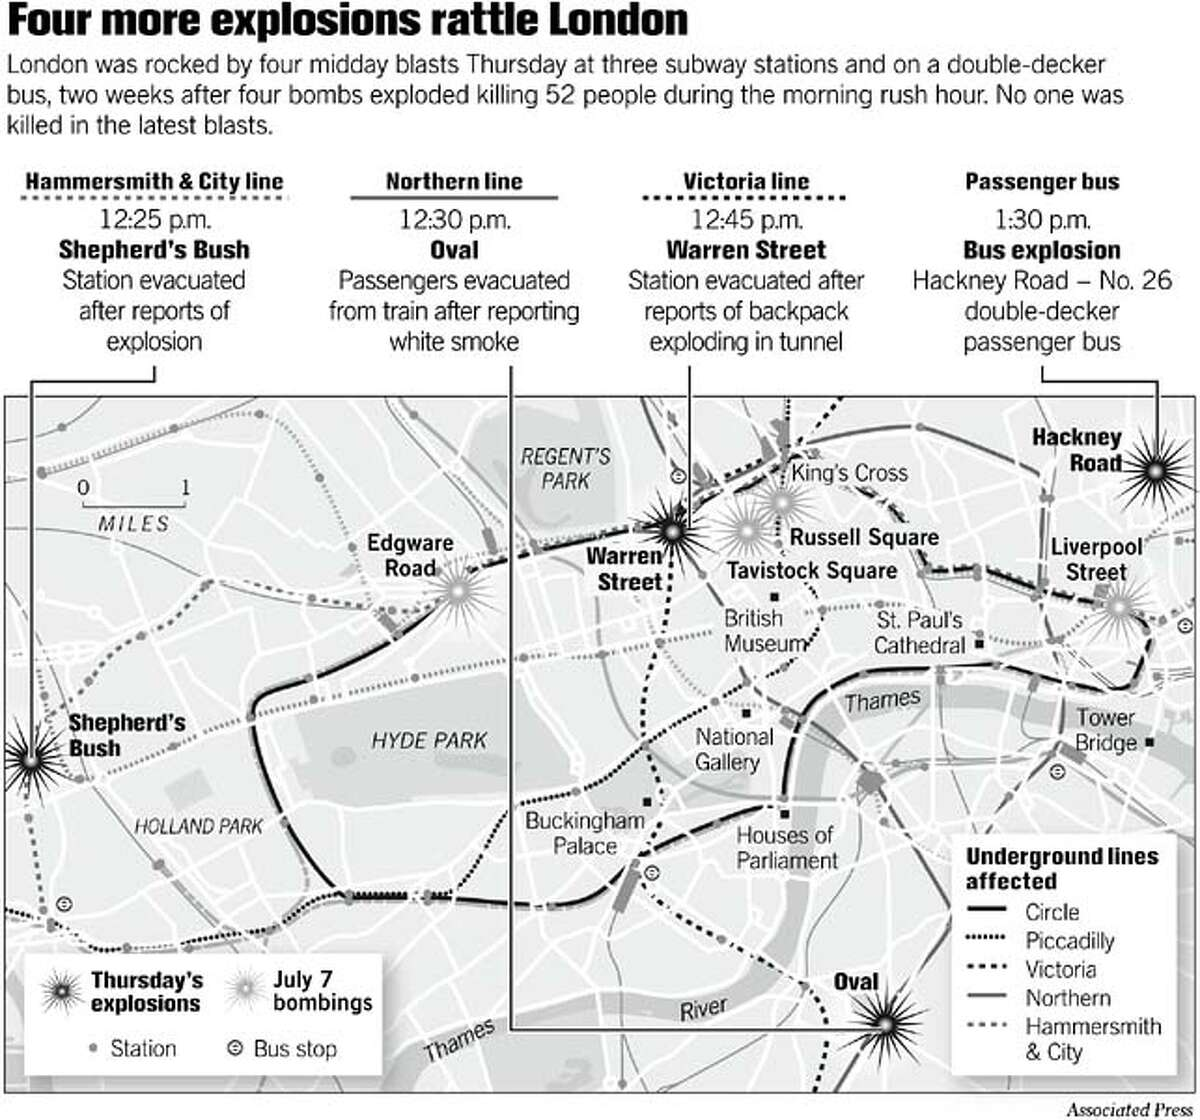 Four more explosions rattle London. Associated Press Graphic